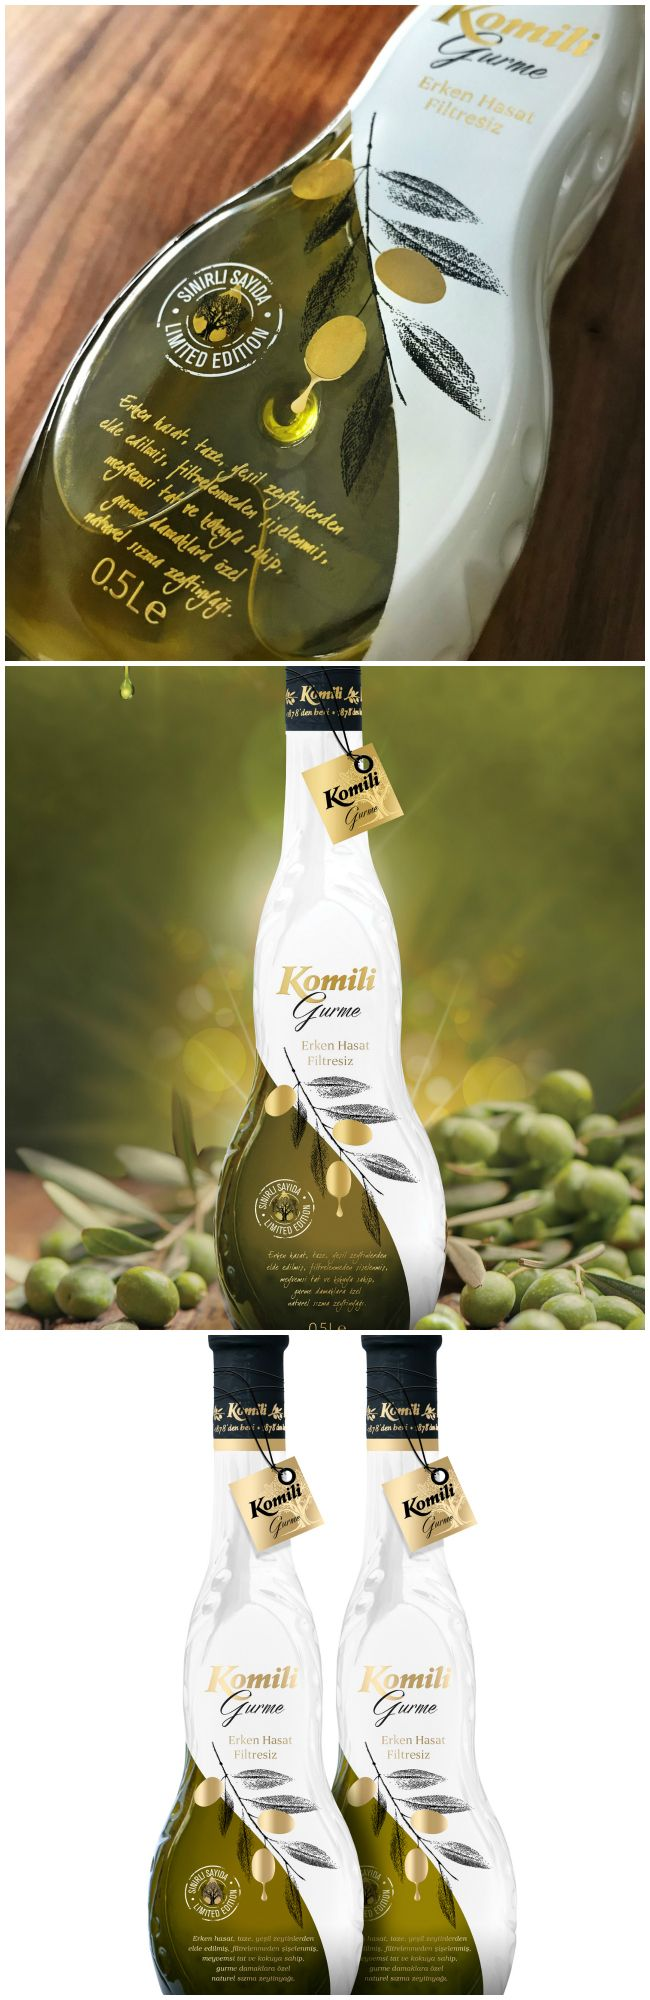 Orhan Irmak Tasarim - Komili Gurme Olive Oil #packaging‬ #design‬ #diseño‬ #empaques #embalagens‬ #パッケージデザイン‬ #emballage‬ #bestpackagingdesign #worldpackagingdesign #worldpackagingdesignsociety